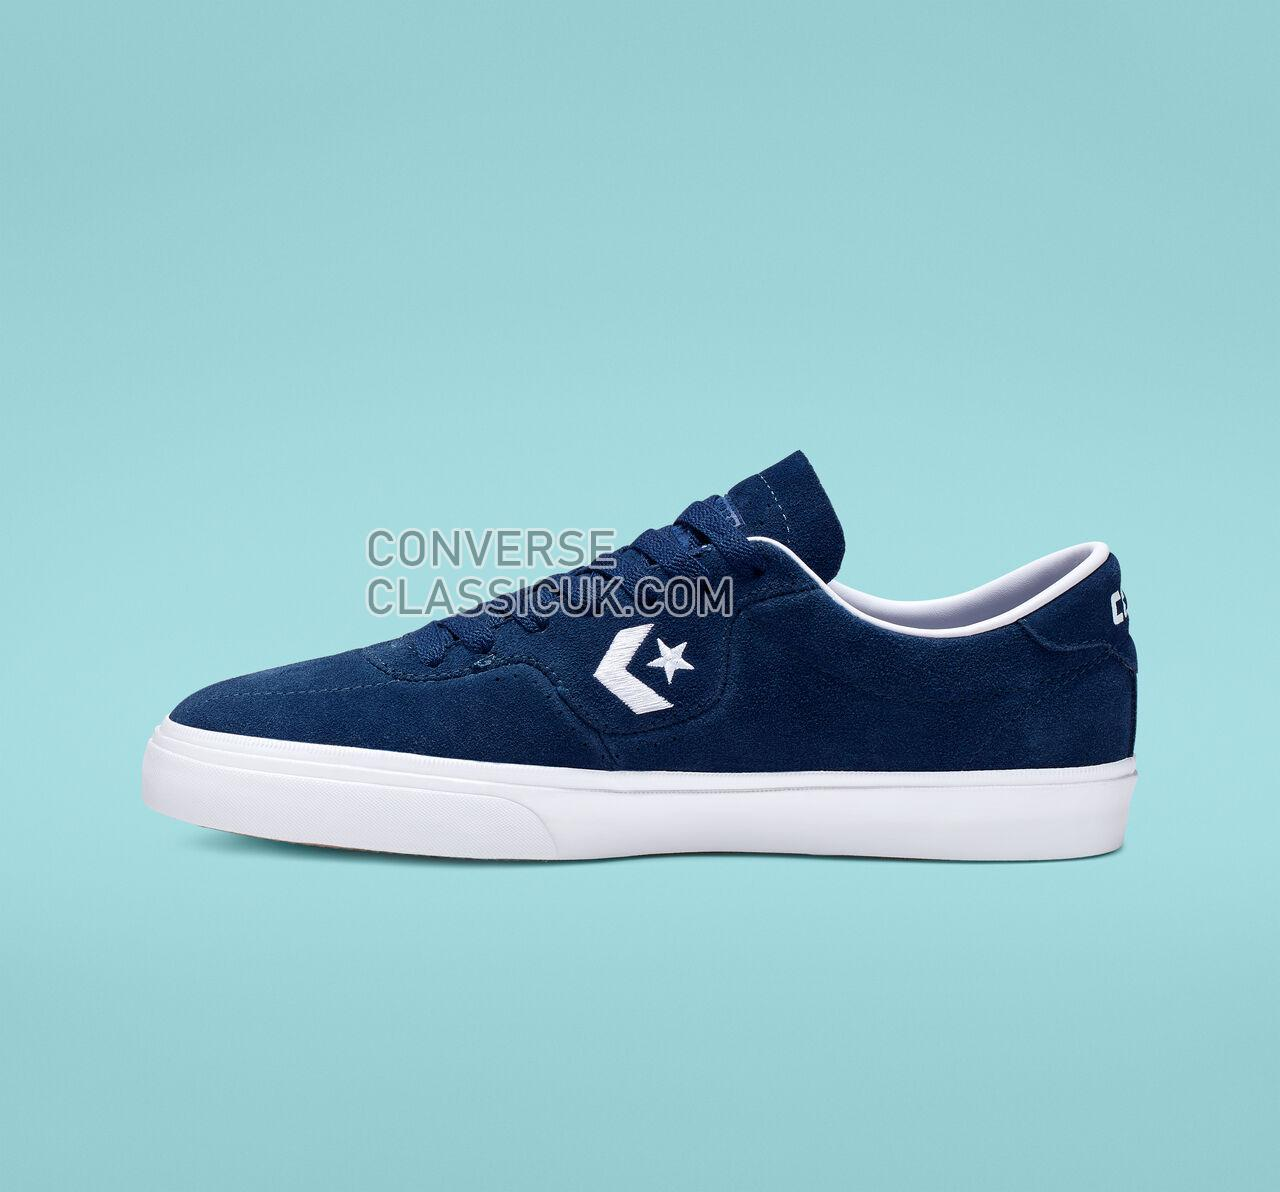 Converse Louie Lopez Pro Low Top Mens Womens Unisex 165273C Navy/White/Gum Shoes